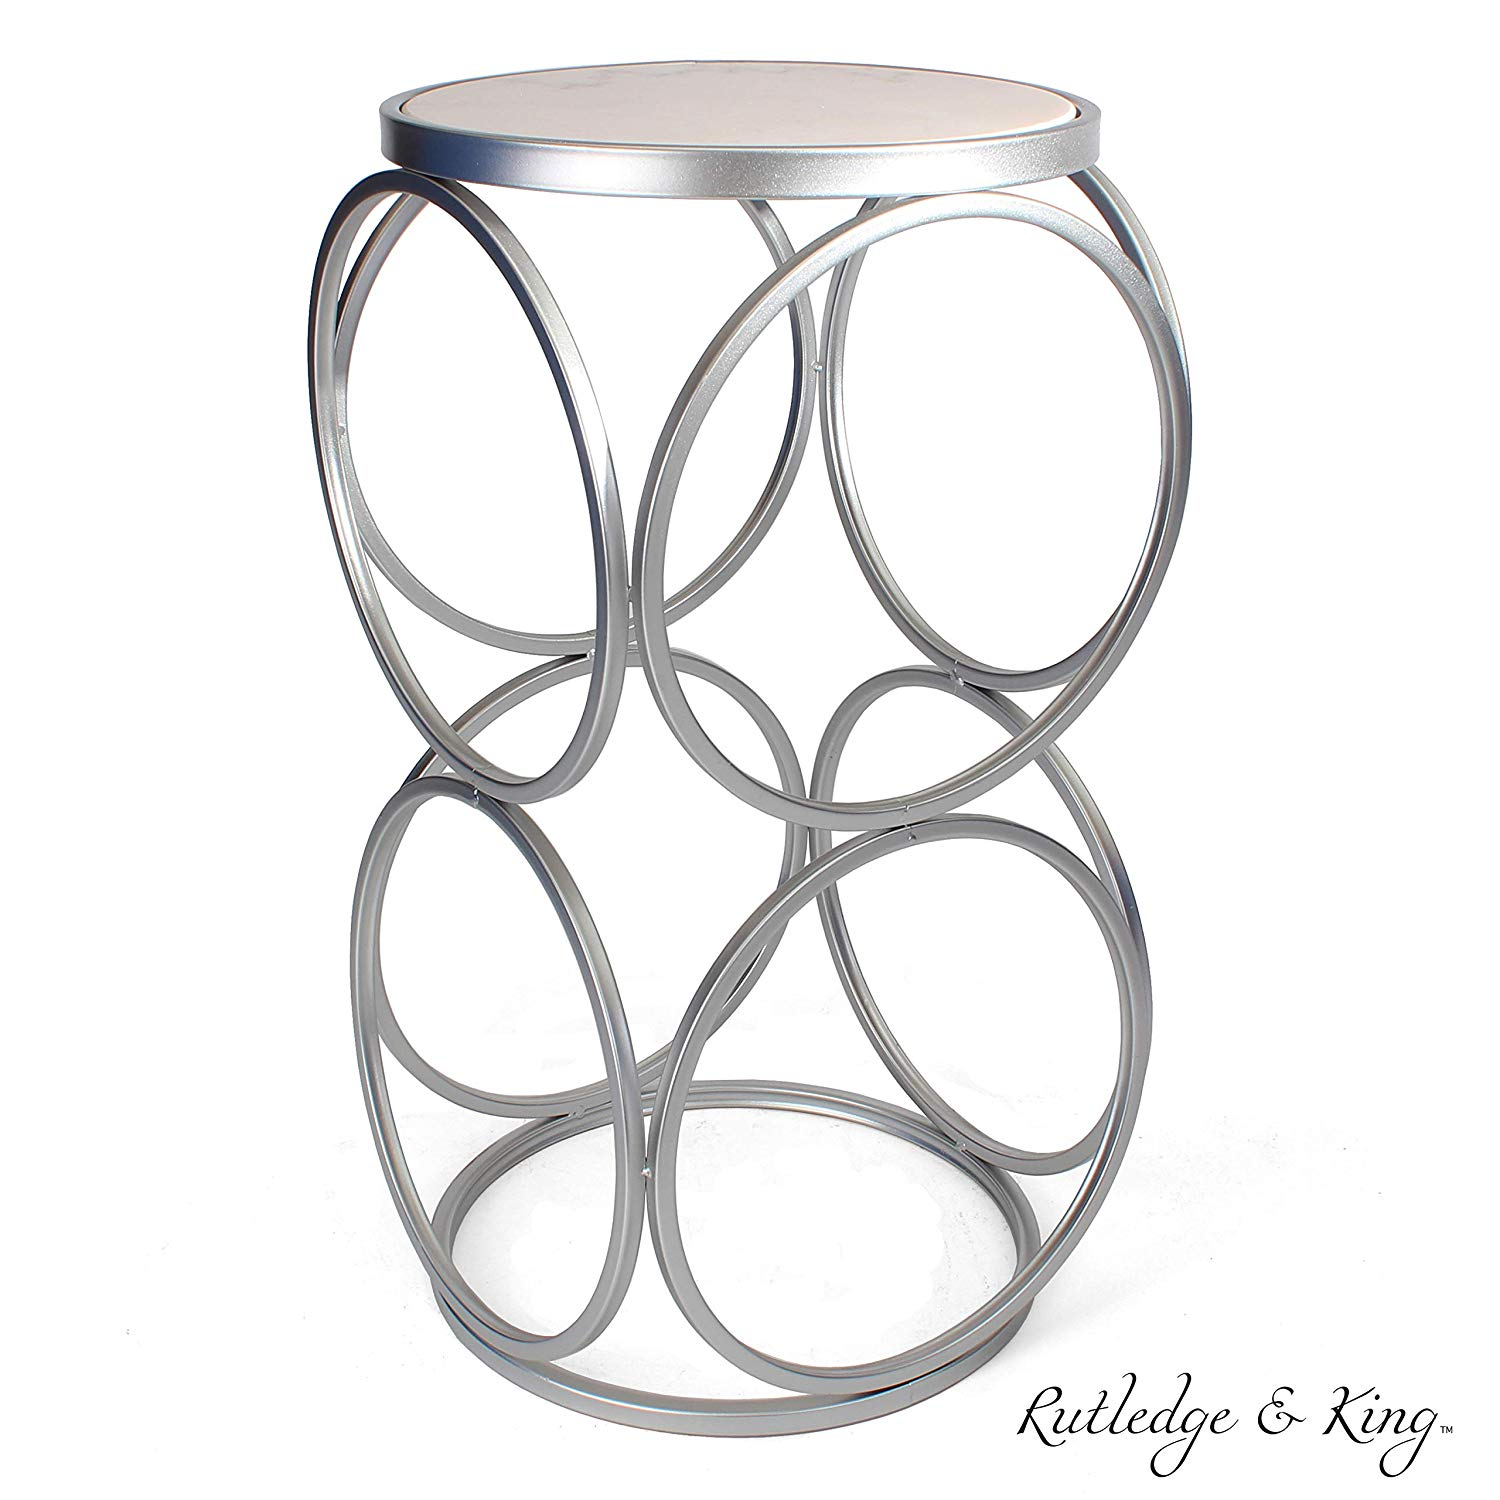 round end table silver with marble top accent and metal side rutledge king britton pier one patio lounge furniture ashley carlyle coffee small white desk drawers outdoor dining